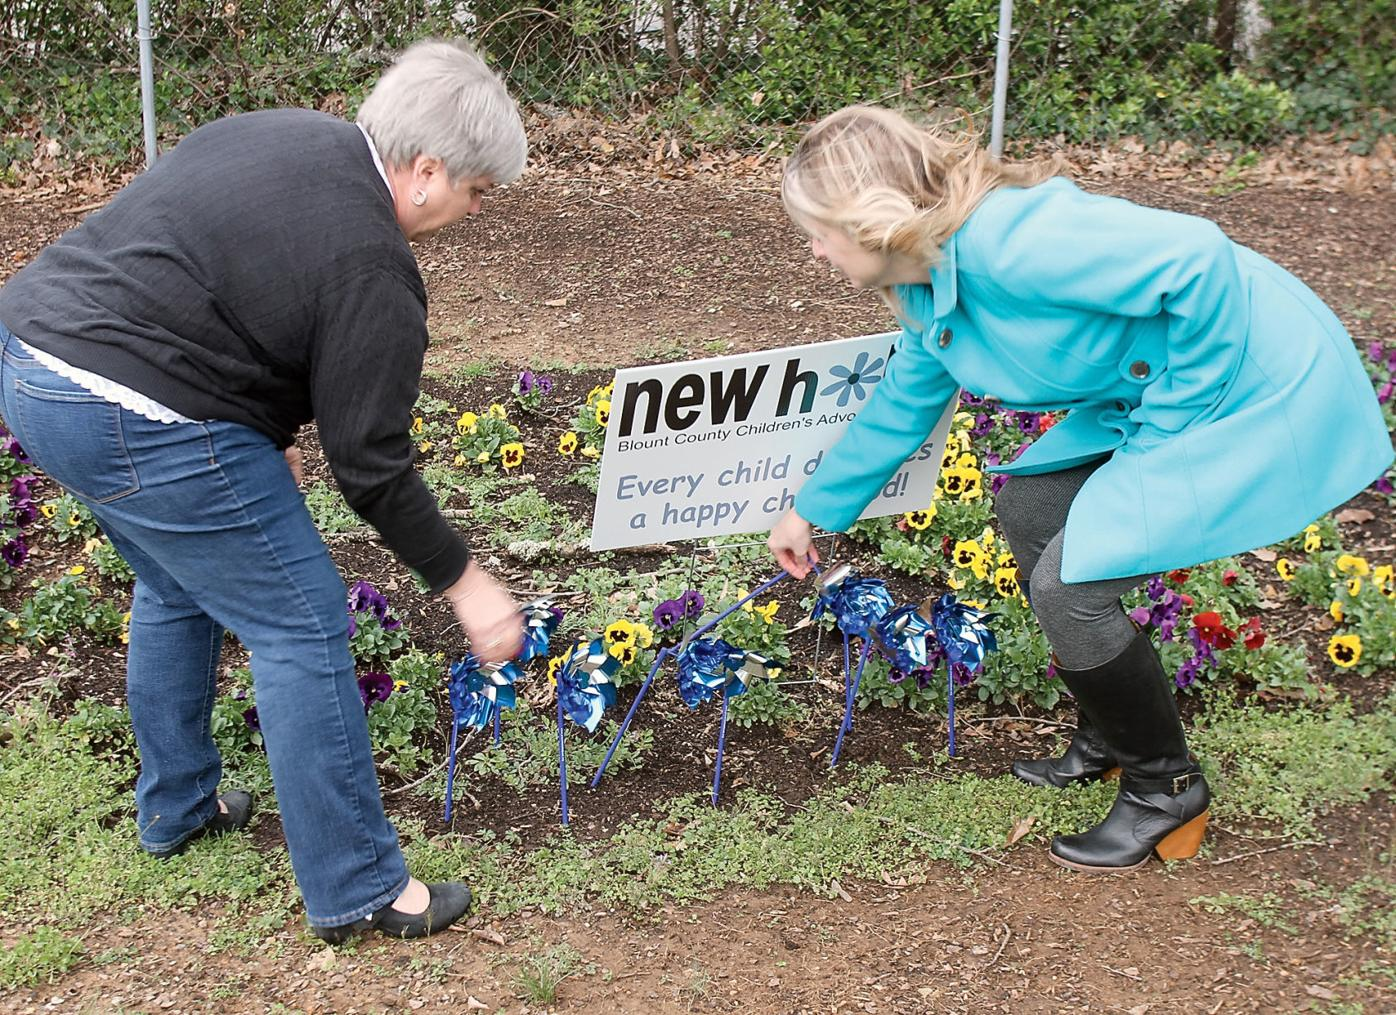 New Hope Blount County Children's Advocacy Center will hold it's annual pinwheel campaign to bring awareness to child abuse